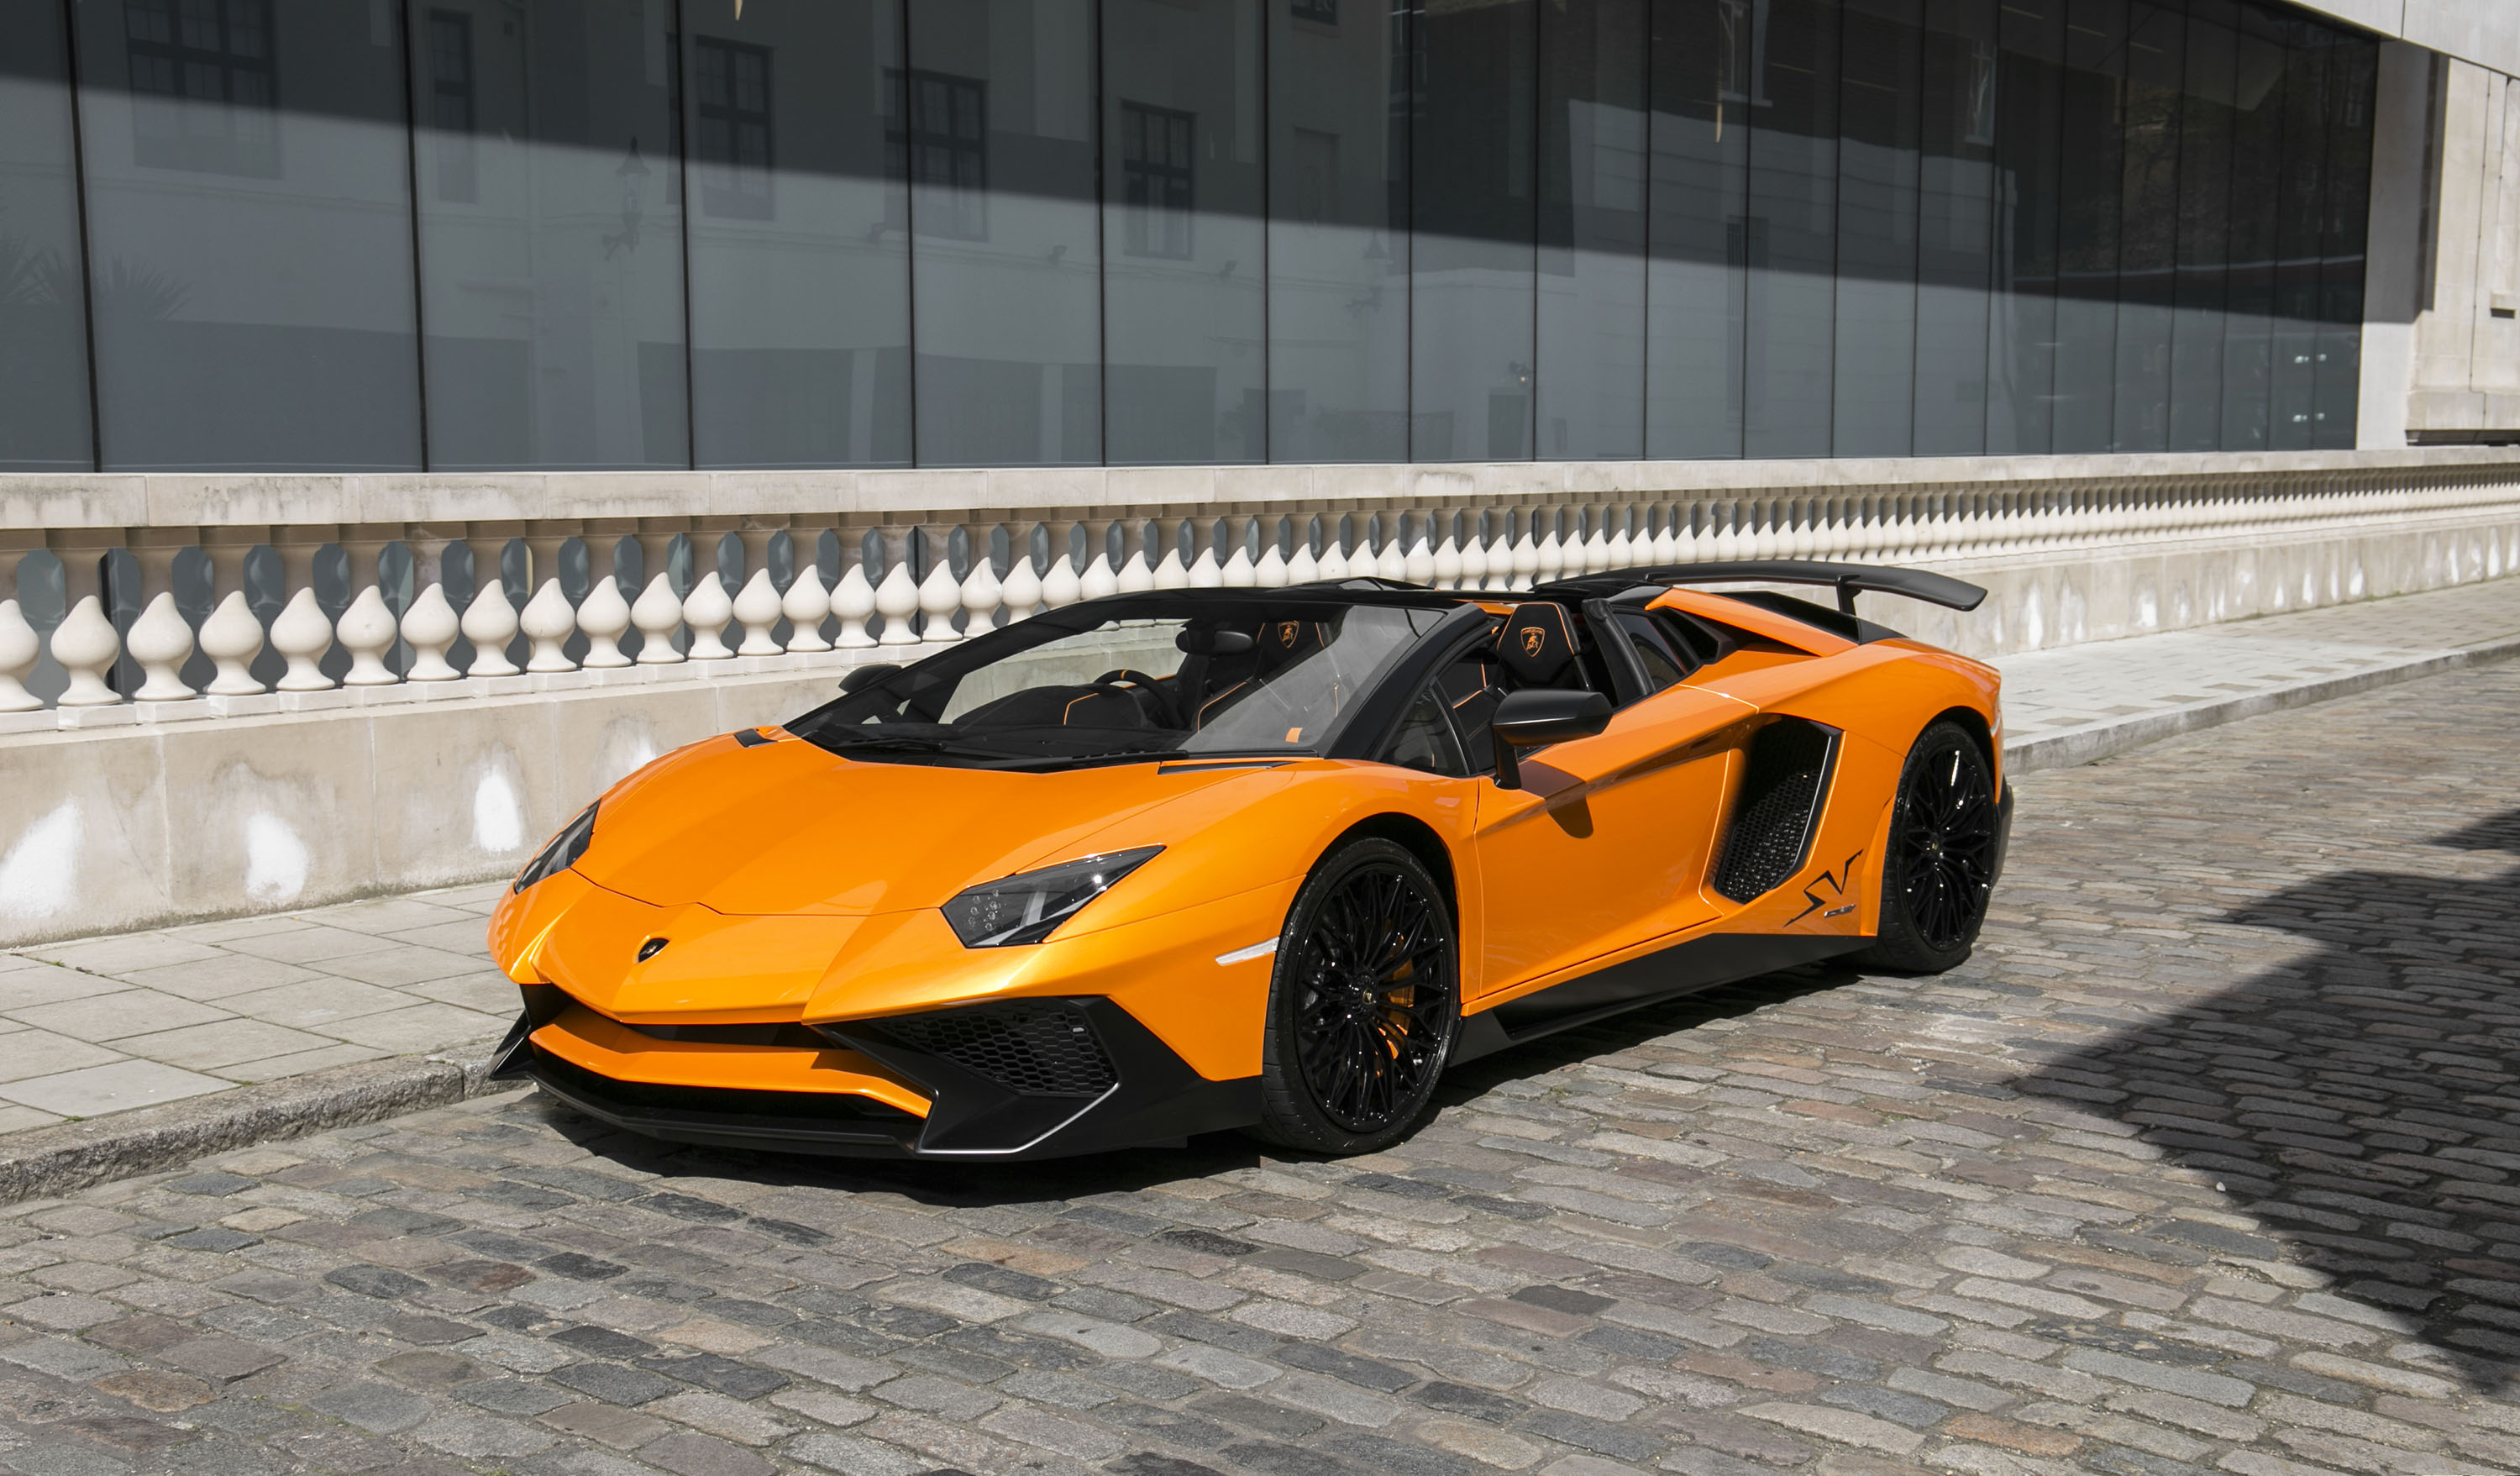 coupe of be the latest superveloce a car is us rare british april news offered lamborghini on lp just for about to gear at bca blackbushe used one wednesday e will sold murcielago sale hyper